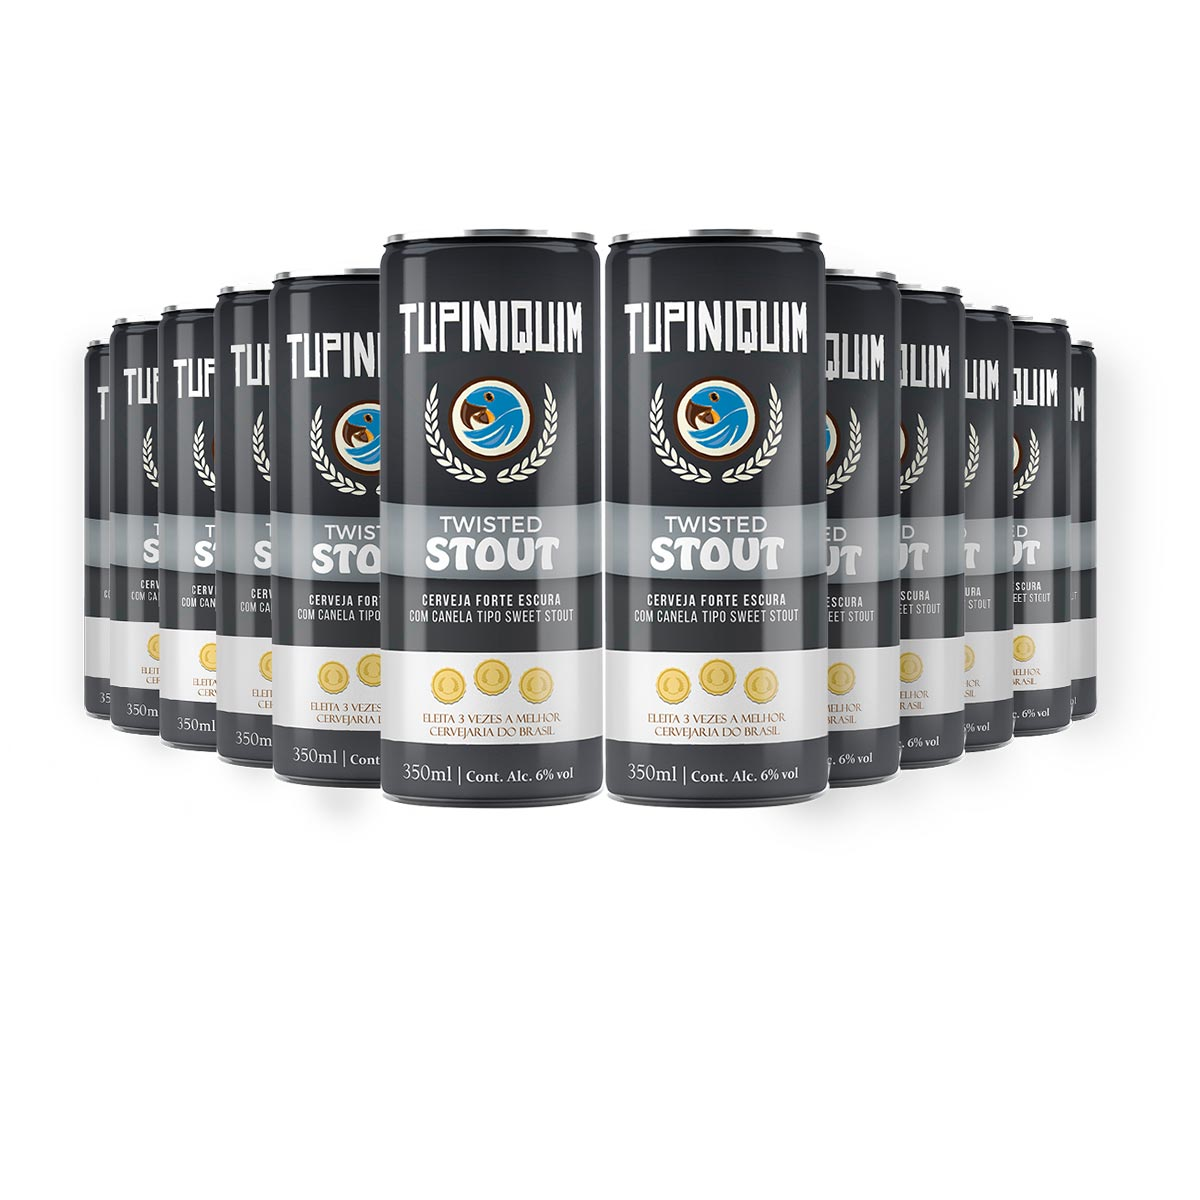 Pack Tupiniquim Twisted Stout 12 cervejas 350ml